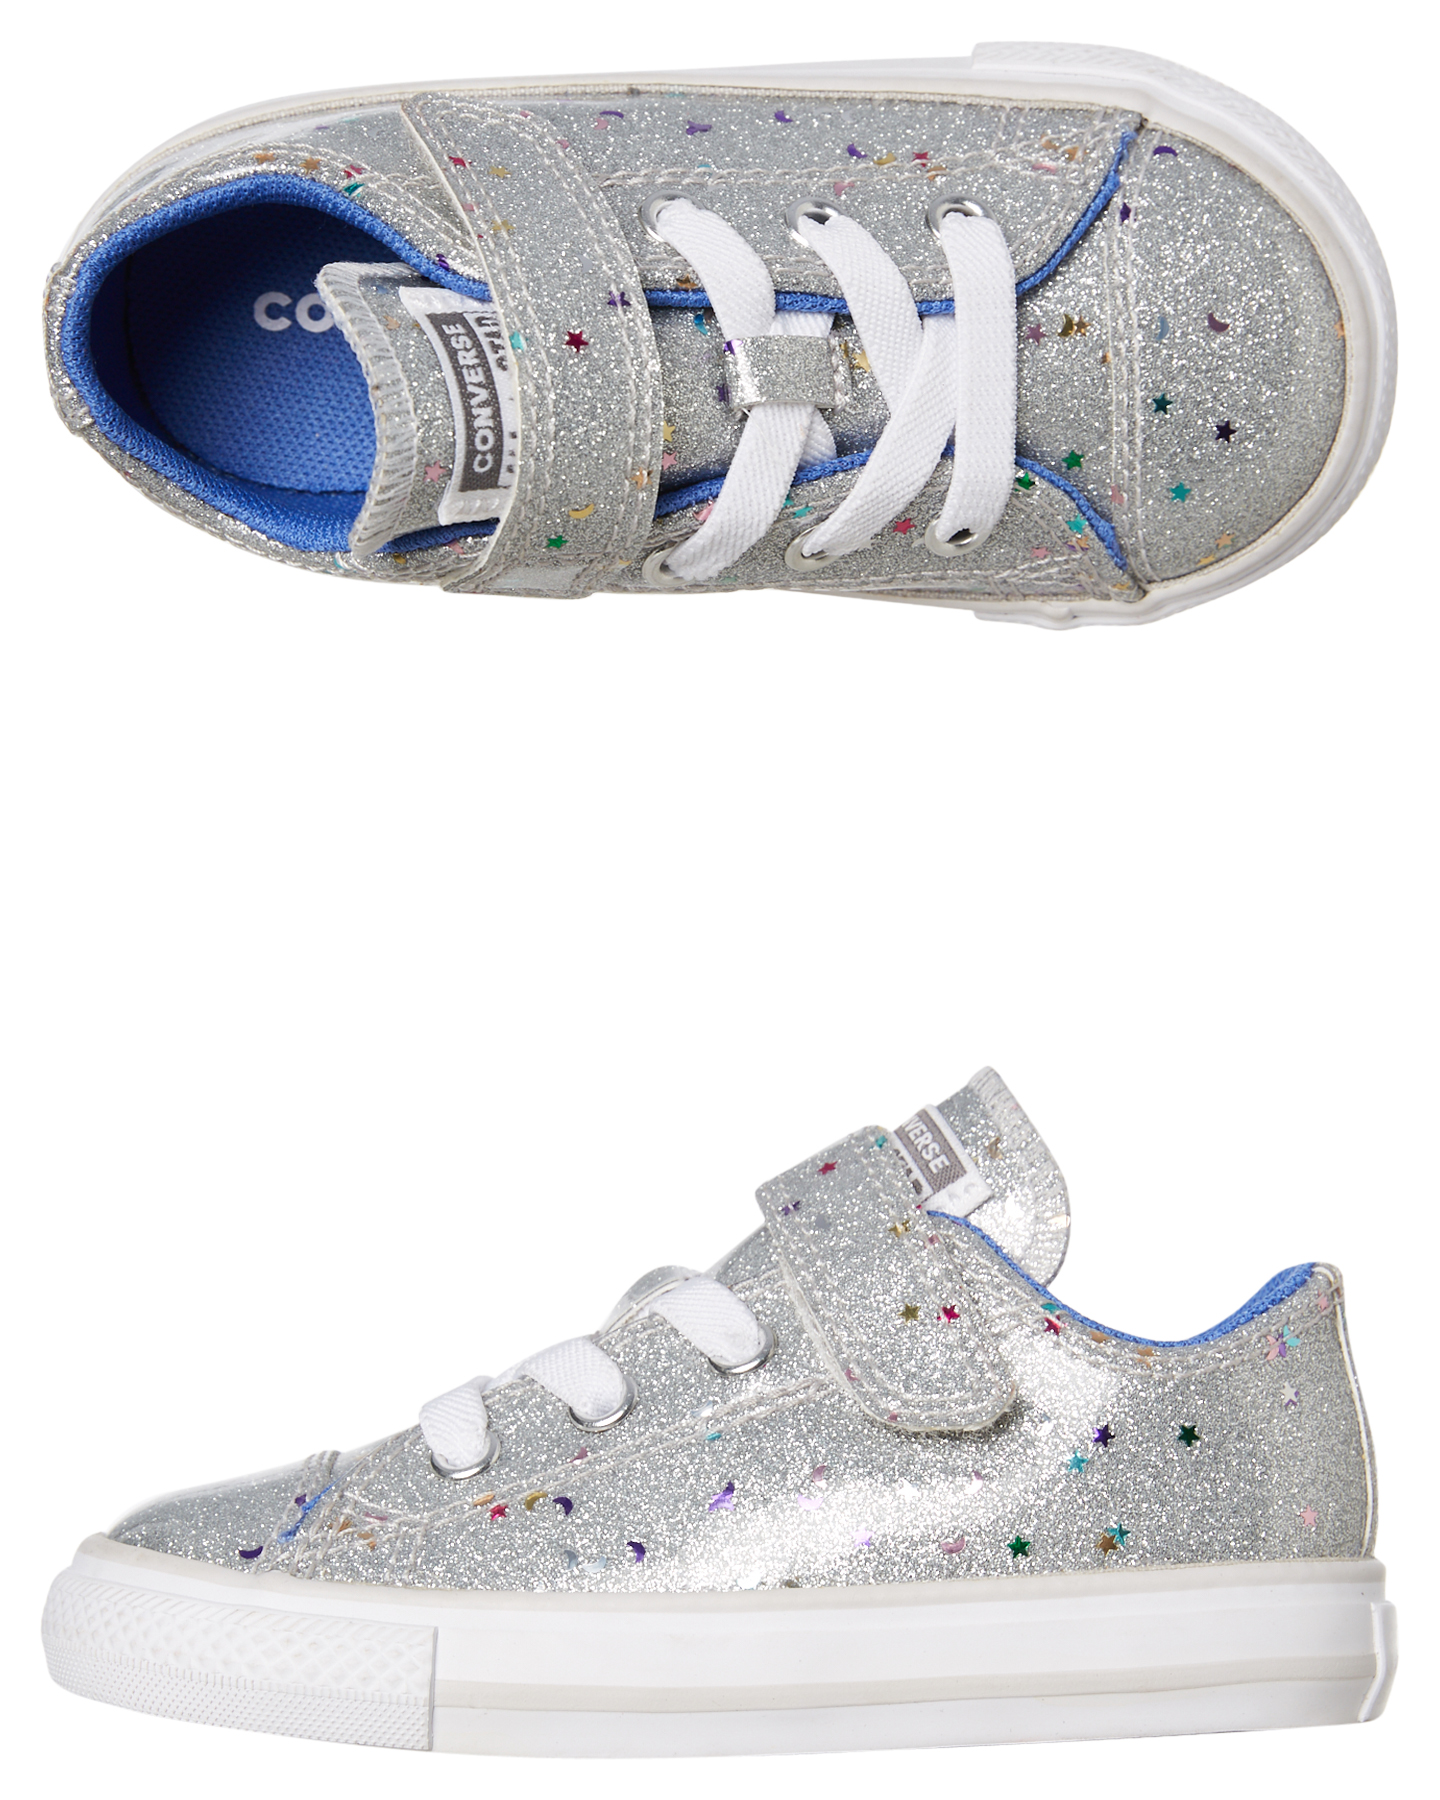 SILVER CONVERSE Girls Chuck Taylor All Star Low Sneaker